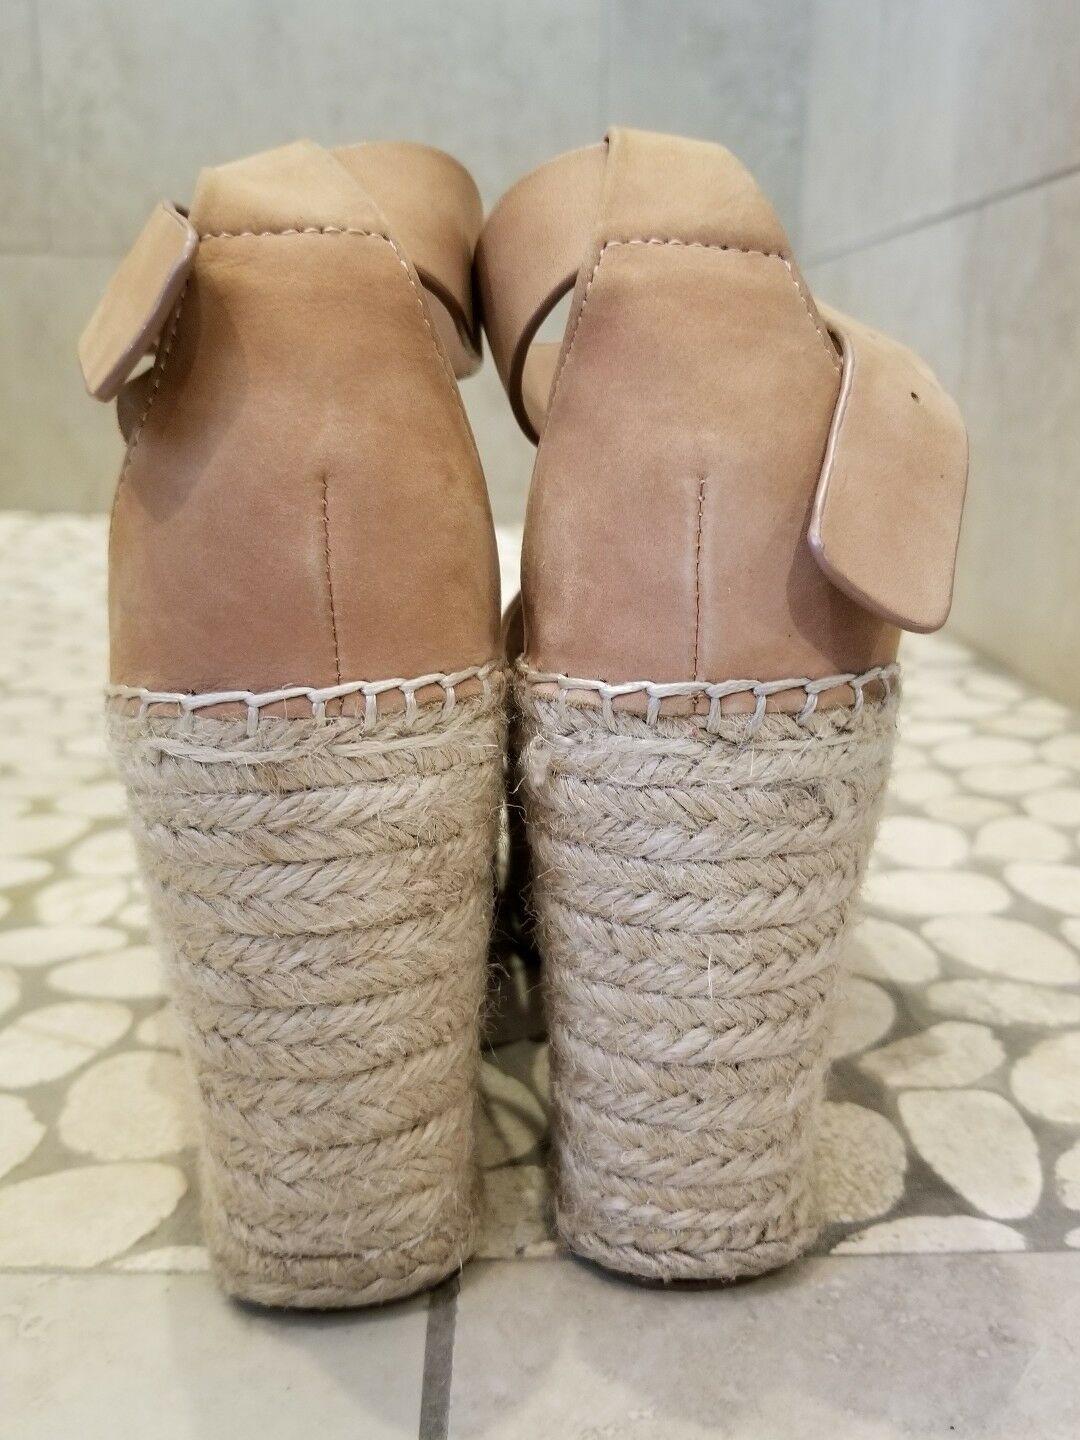 MARC FISHER ANNIE PERFORATED PERFORATED PERFORATED ESPADRILLE WEDGE SANDALS IN blueSH SUEDE SIZE 8 e731d8